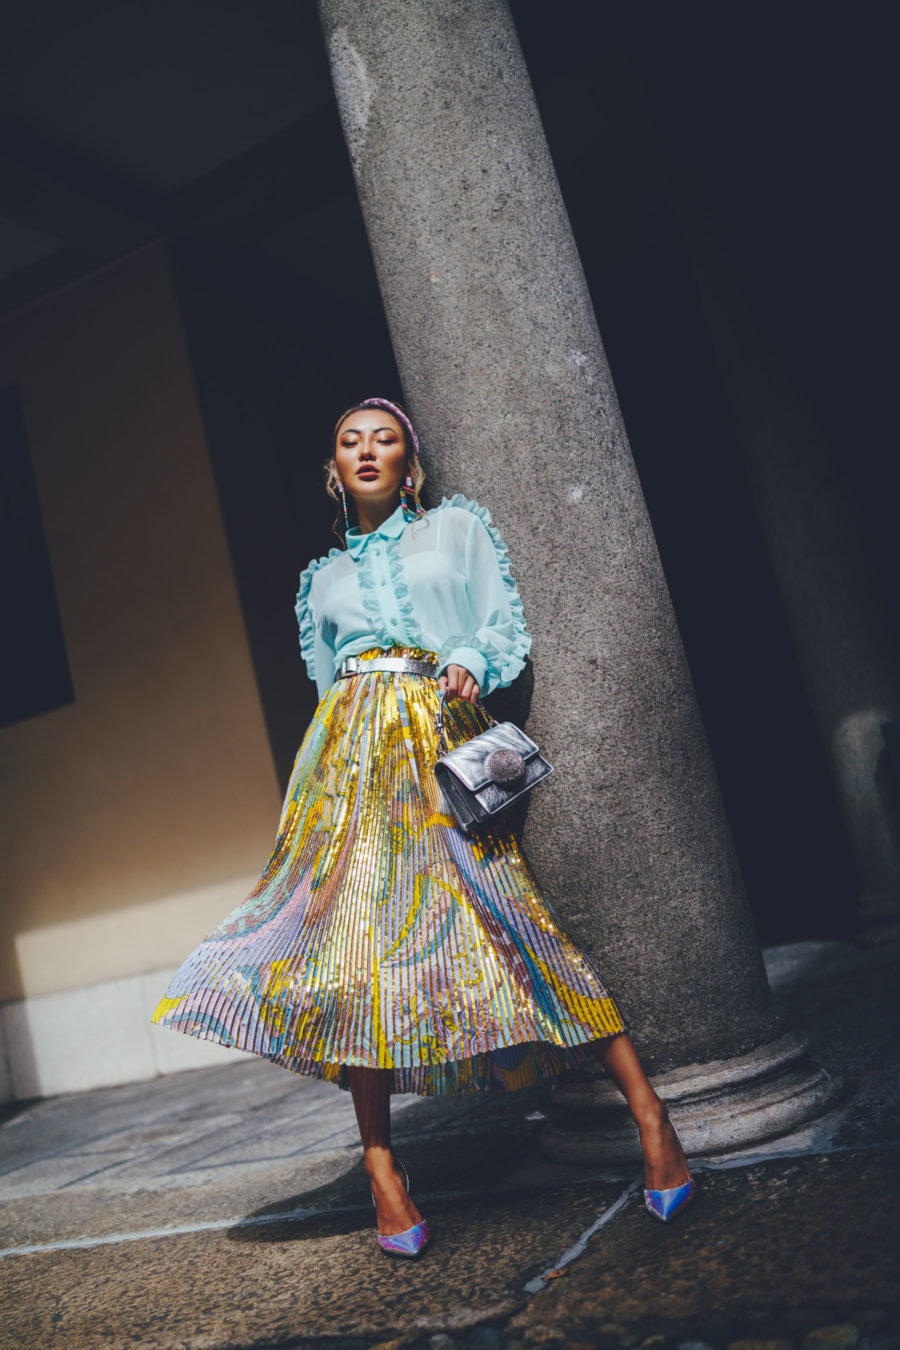 fashion blogger jessica wang wears pleated skirt with amina muaddi heels and shares her favorite fashion brands of 2020 // Notjessfashion.com